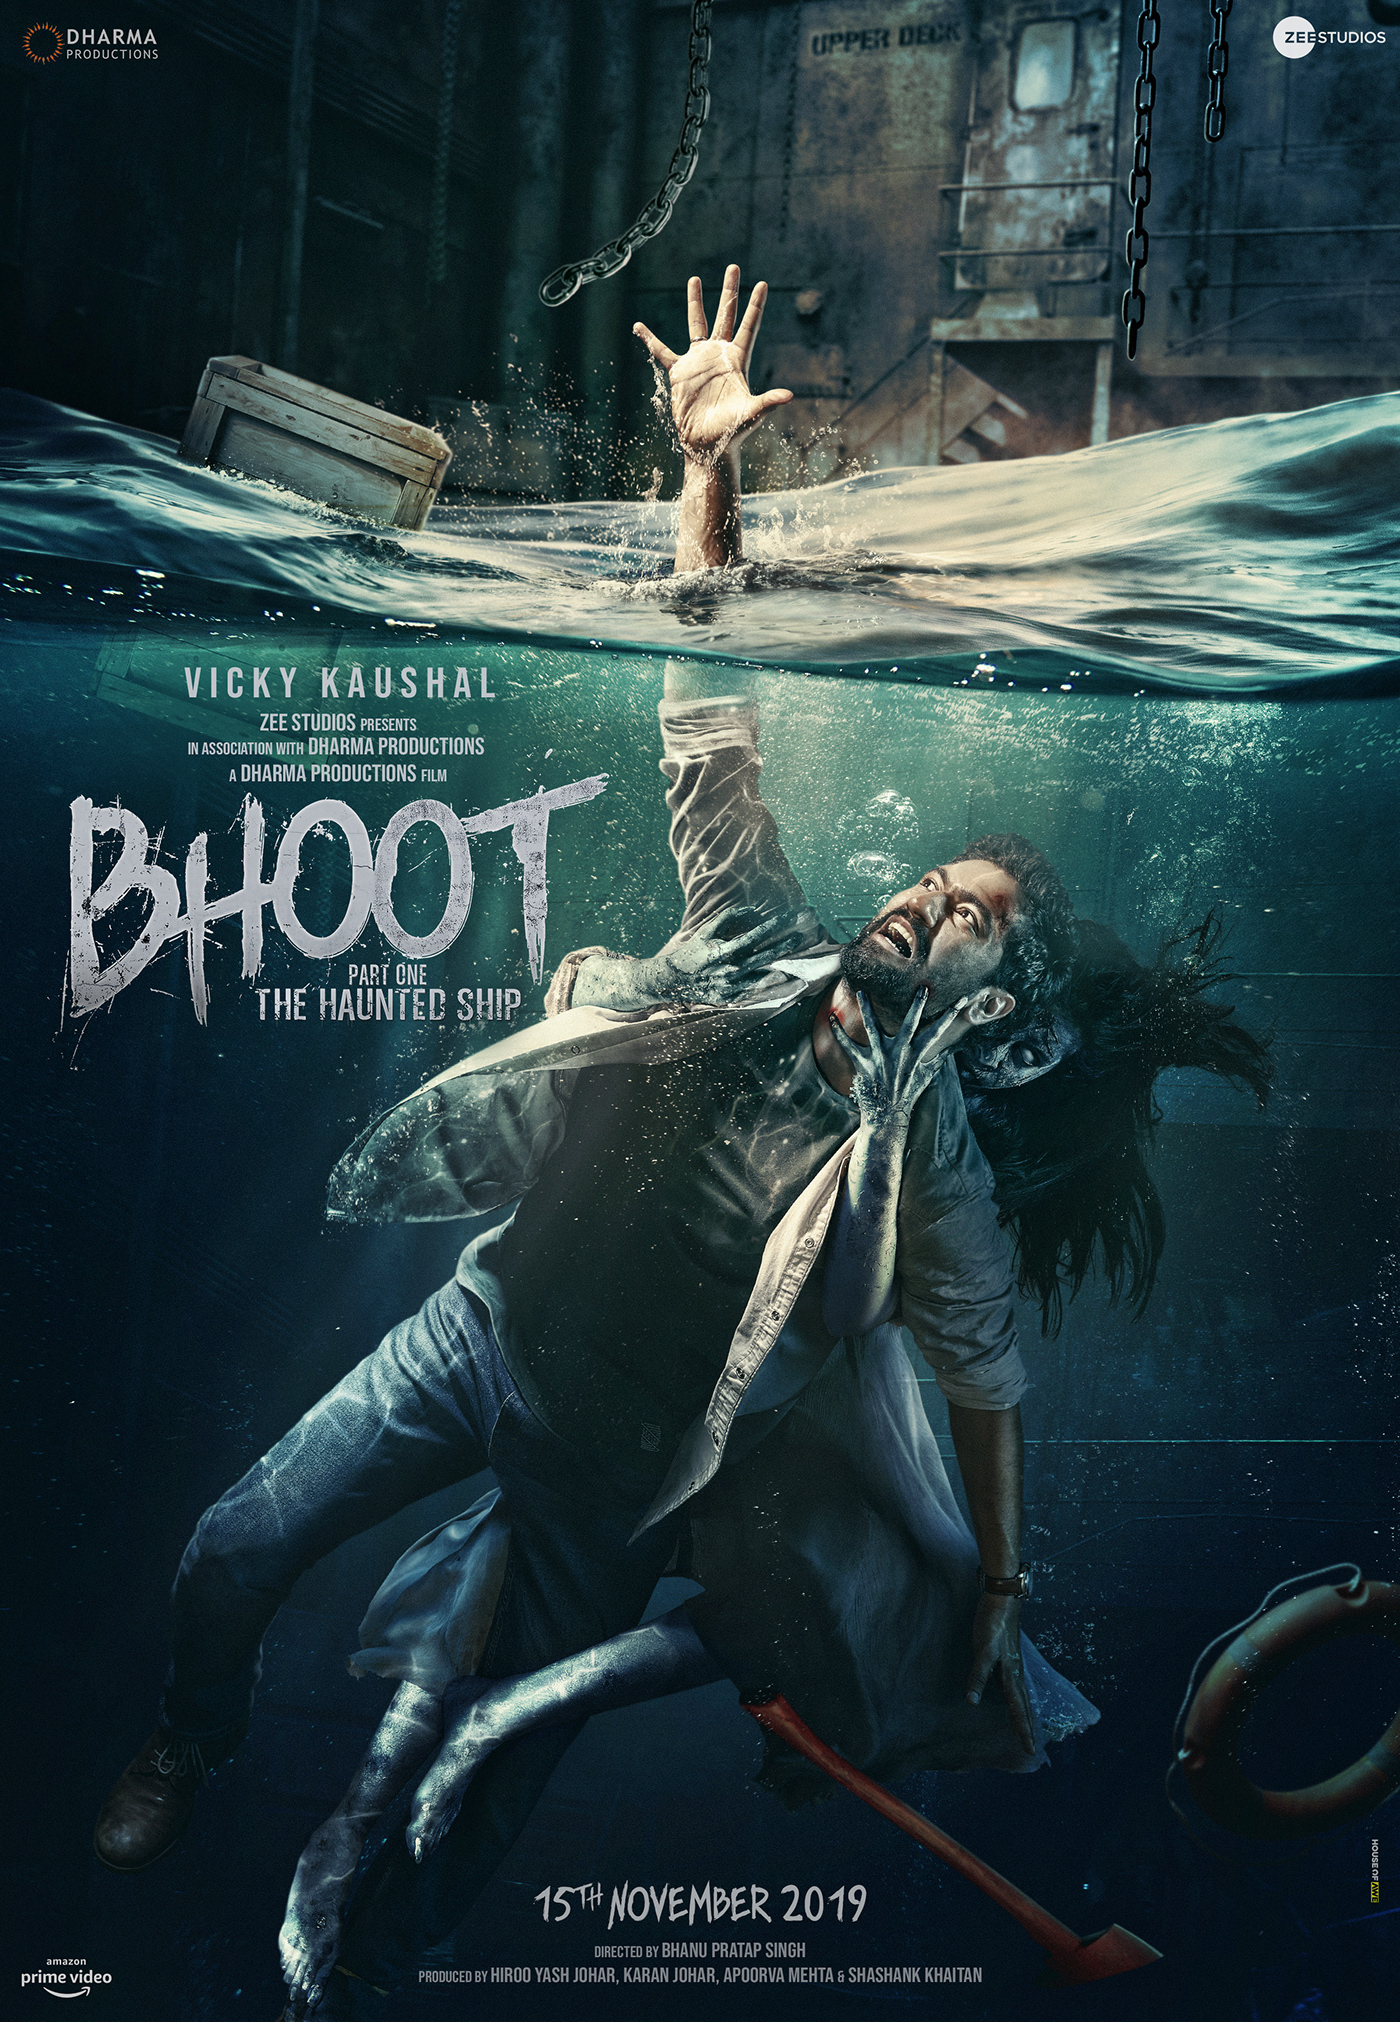 Bhoot Part One: The Haunted Ship (2020) | 1080p | 480p | AMZN WEB-DL DD+5.1 x264 – Telly | DUS-IcTv | BonsaiHD | 5.5 GB | 3.9 GB | 1.1 GB |